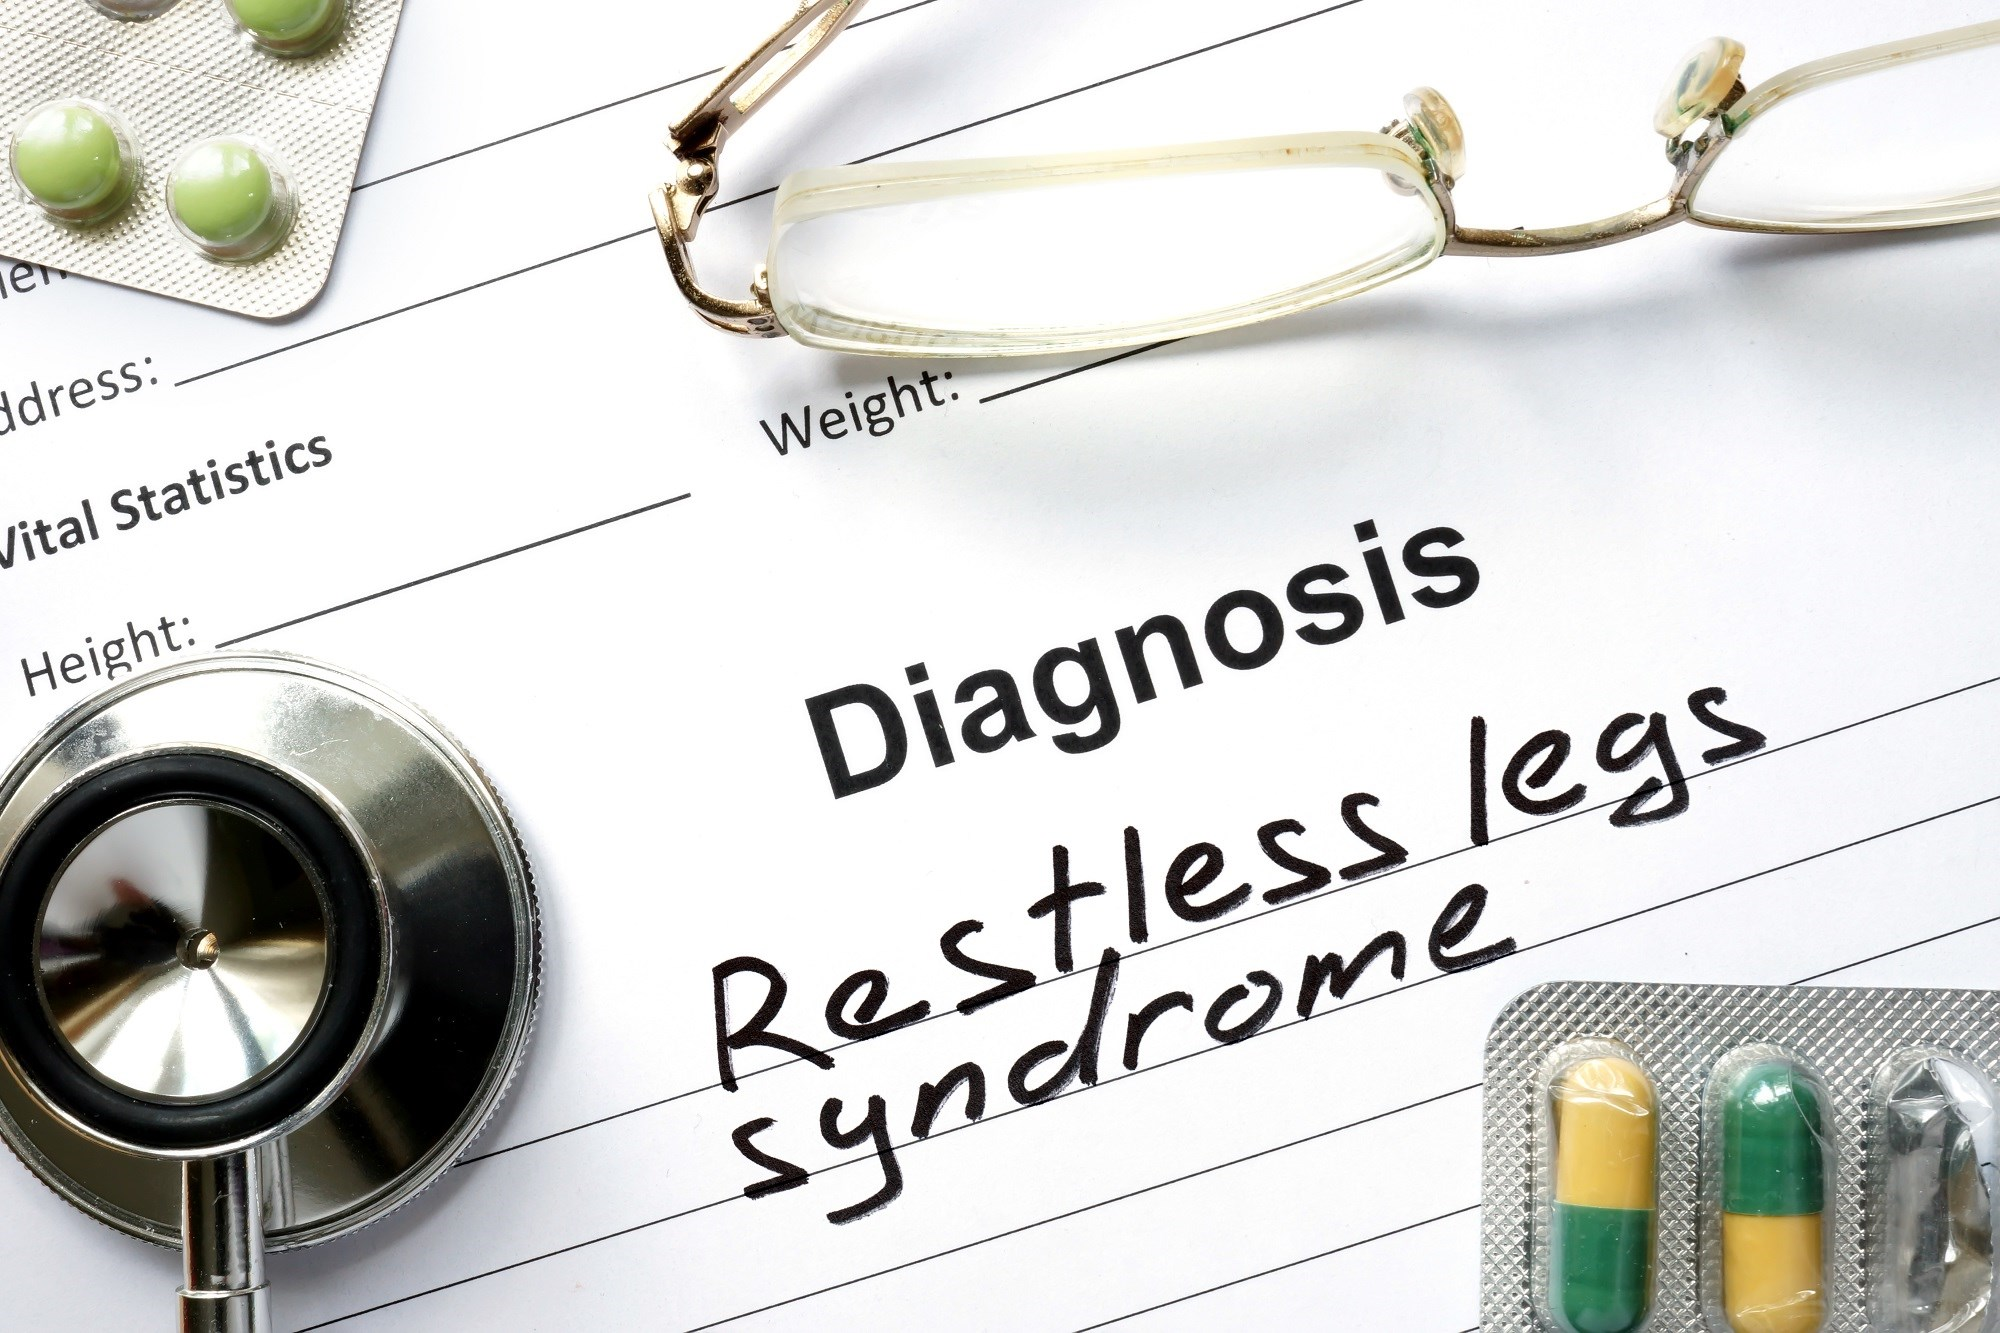 Restlessness was associated with sleep disturbances, disease severity, and depressive symptoms in patients with Parkinson disease.